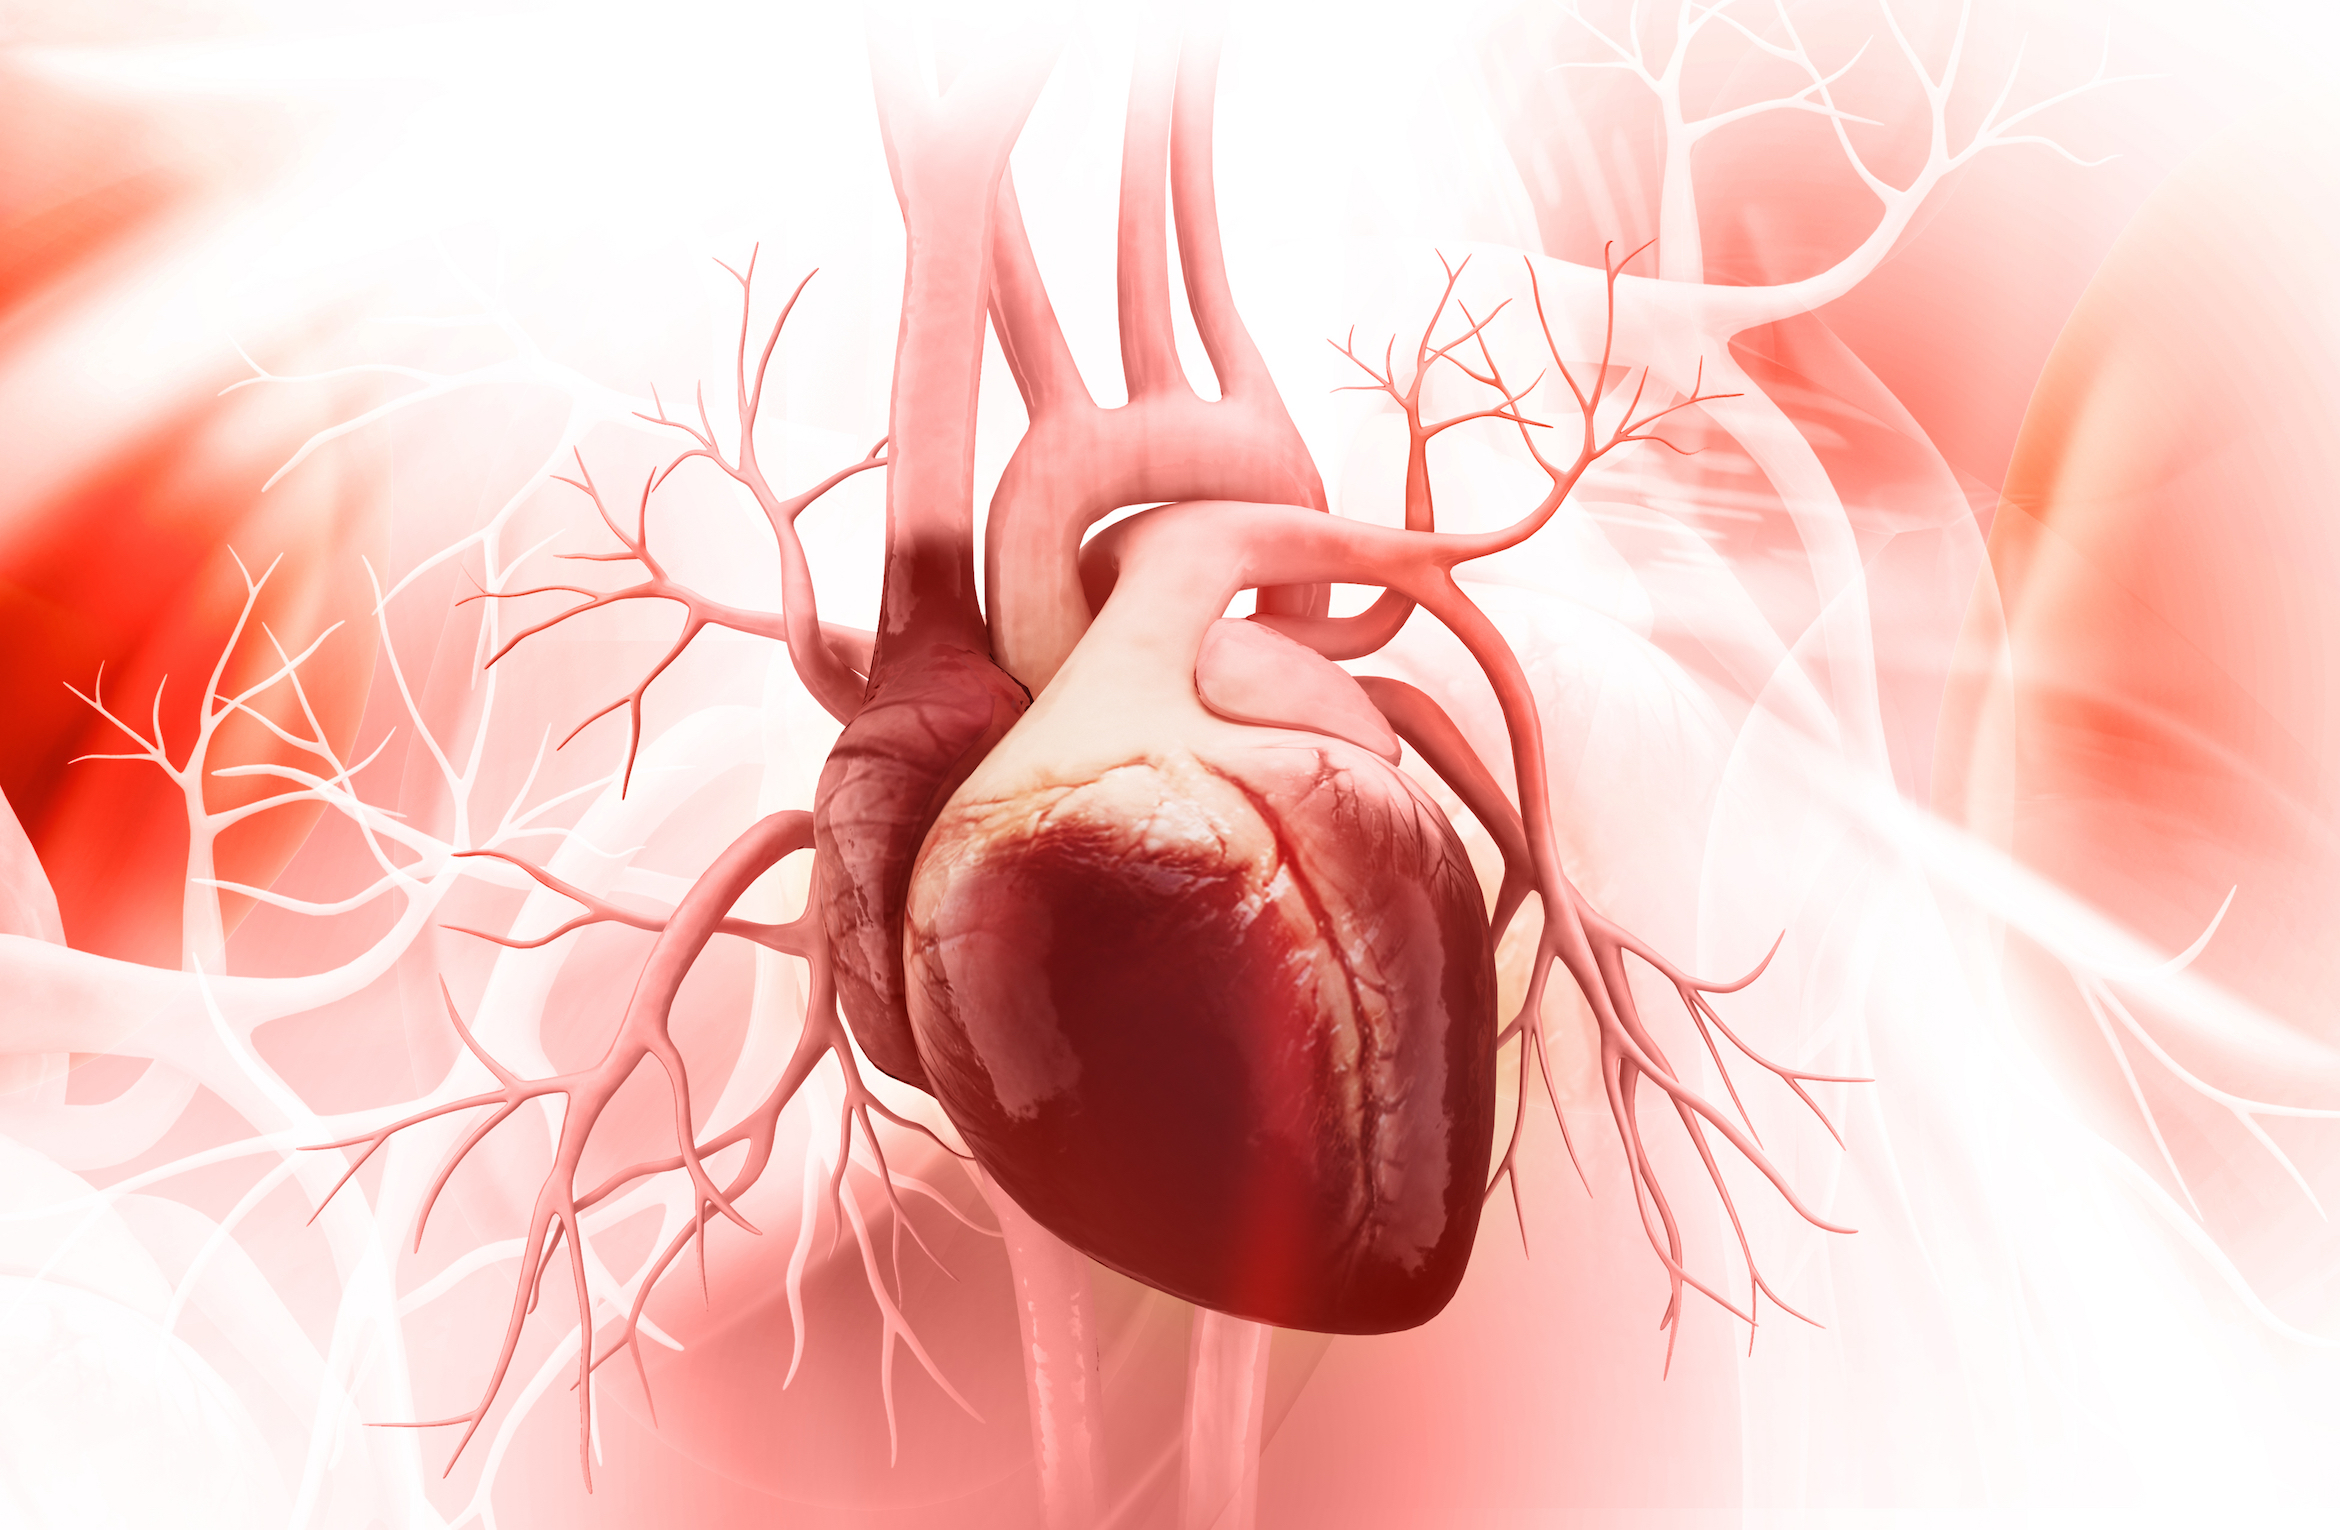 Humans could eventually be able to regenerate the heart, according to a new study from the University of Florida.